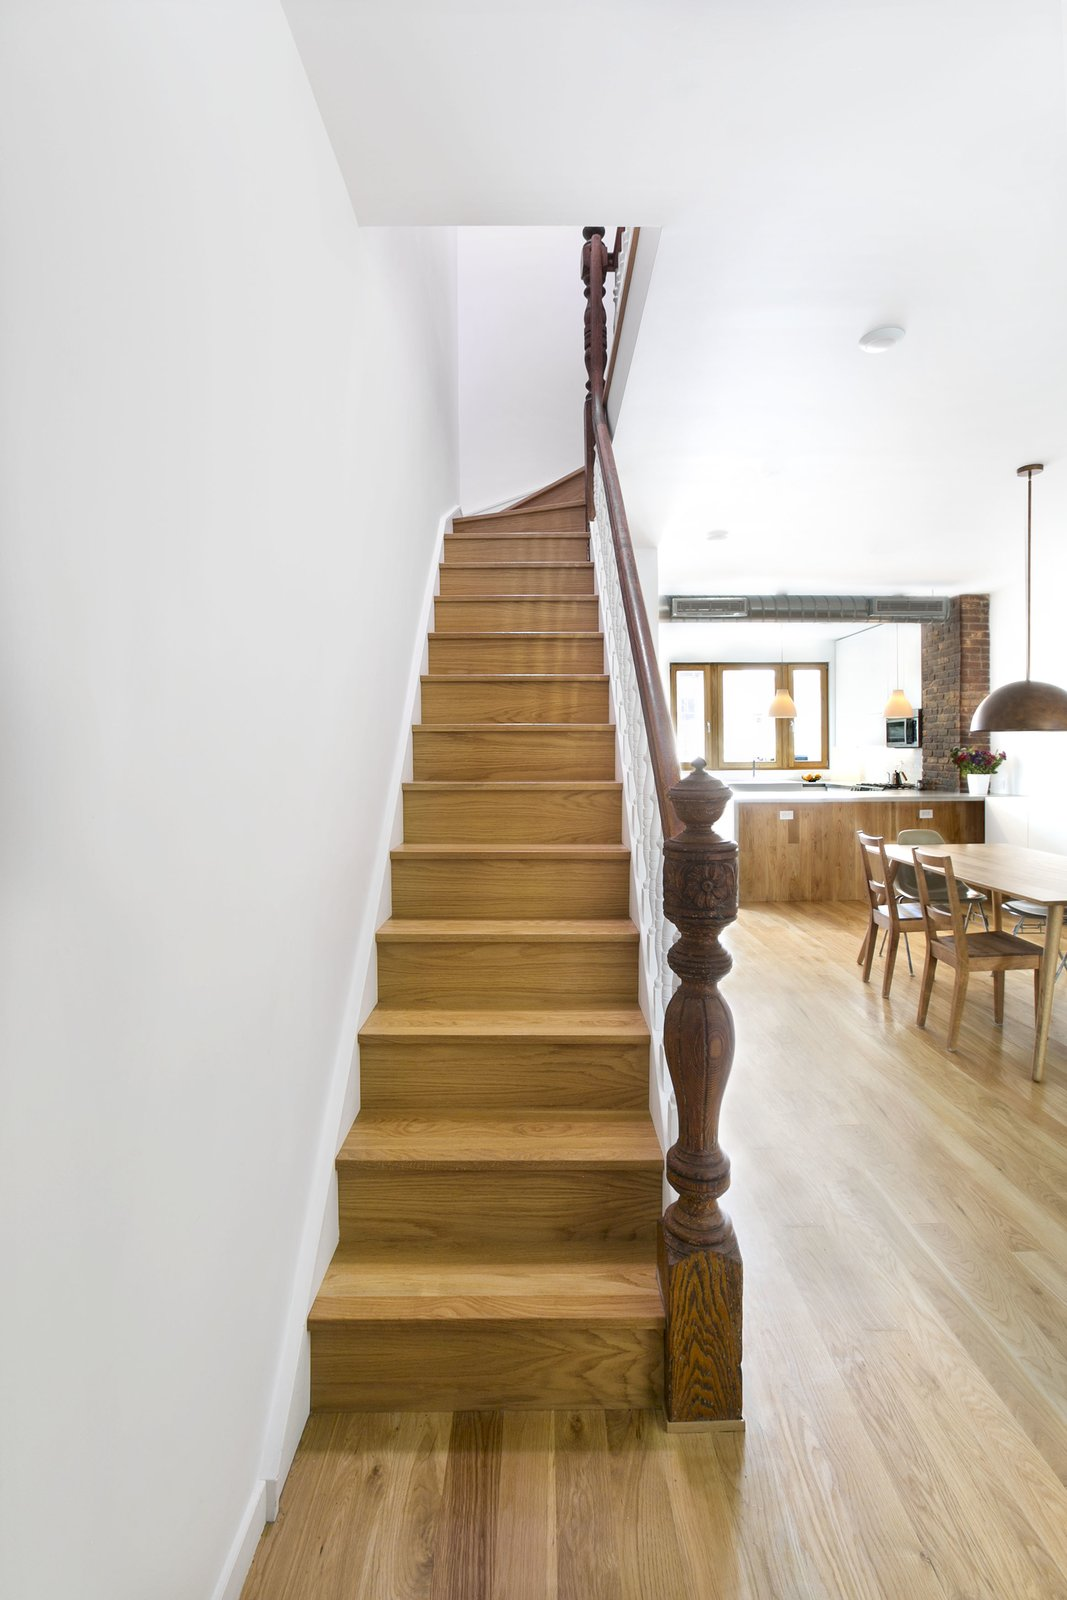 Staircase, Wood Railing, and Wood Tread Stairs from parlor floor to second floor, with original railing.  Sunset Park Row House